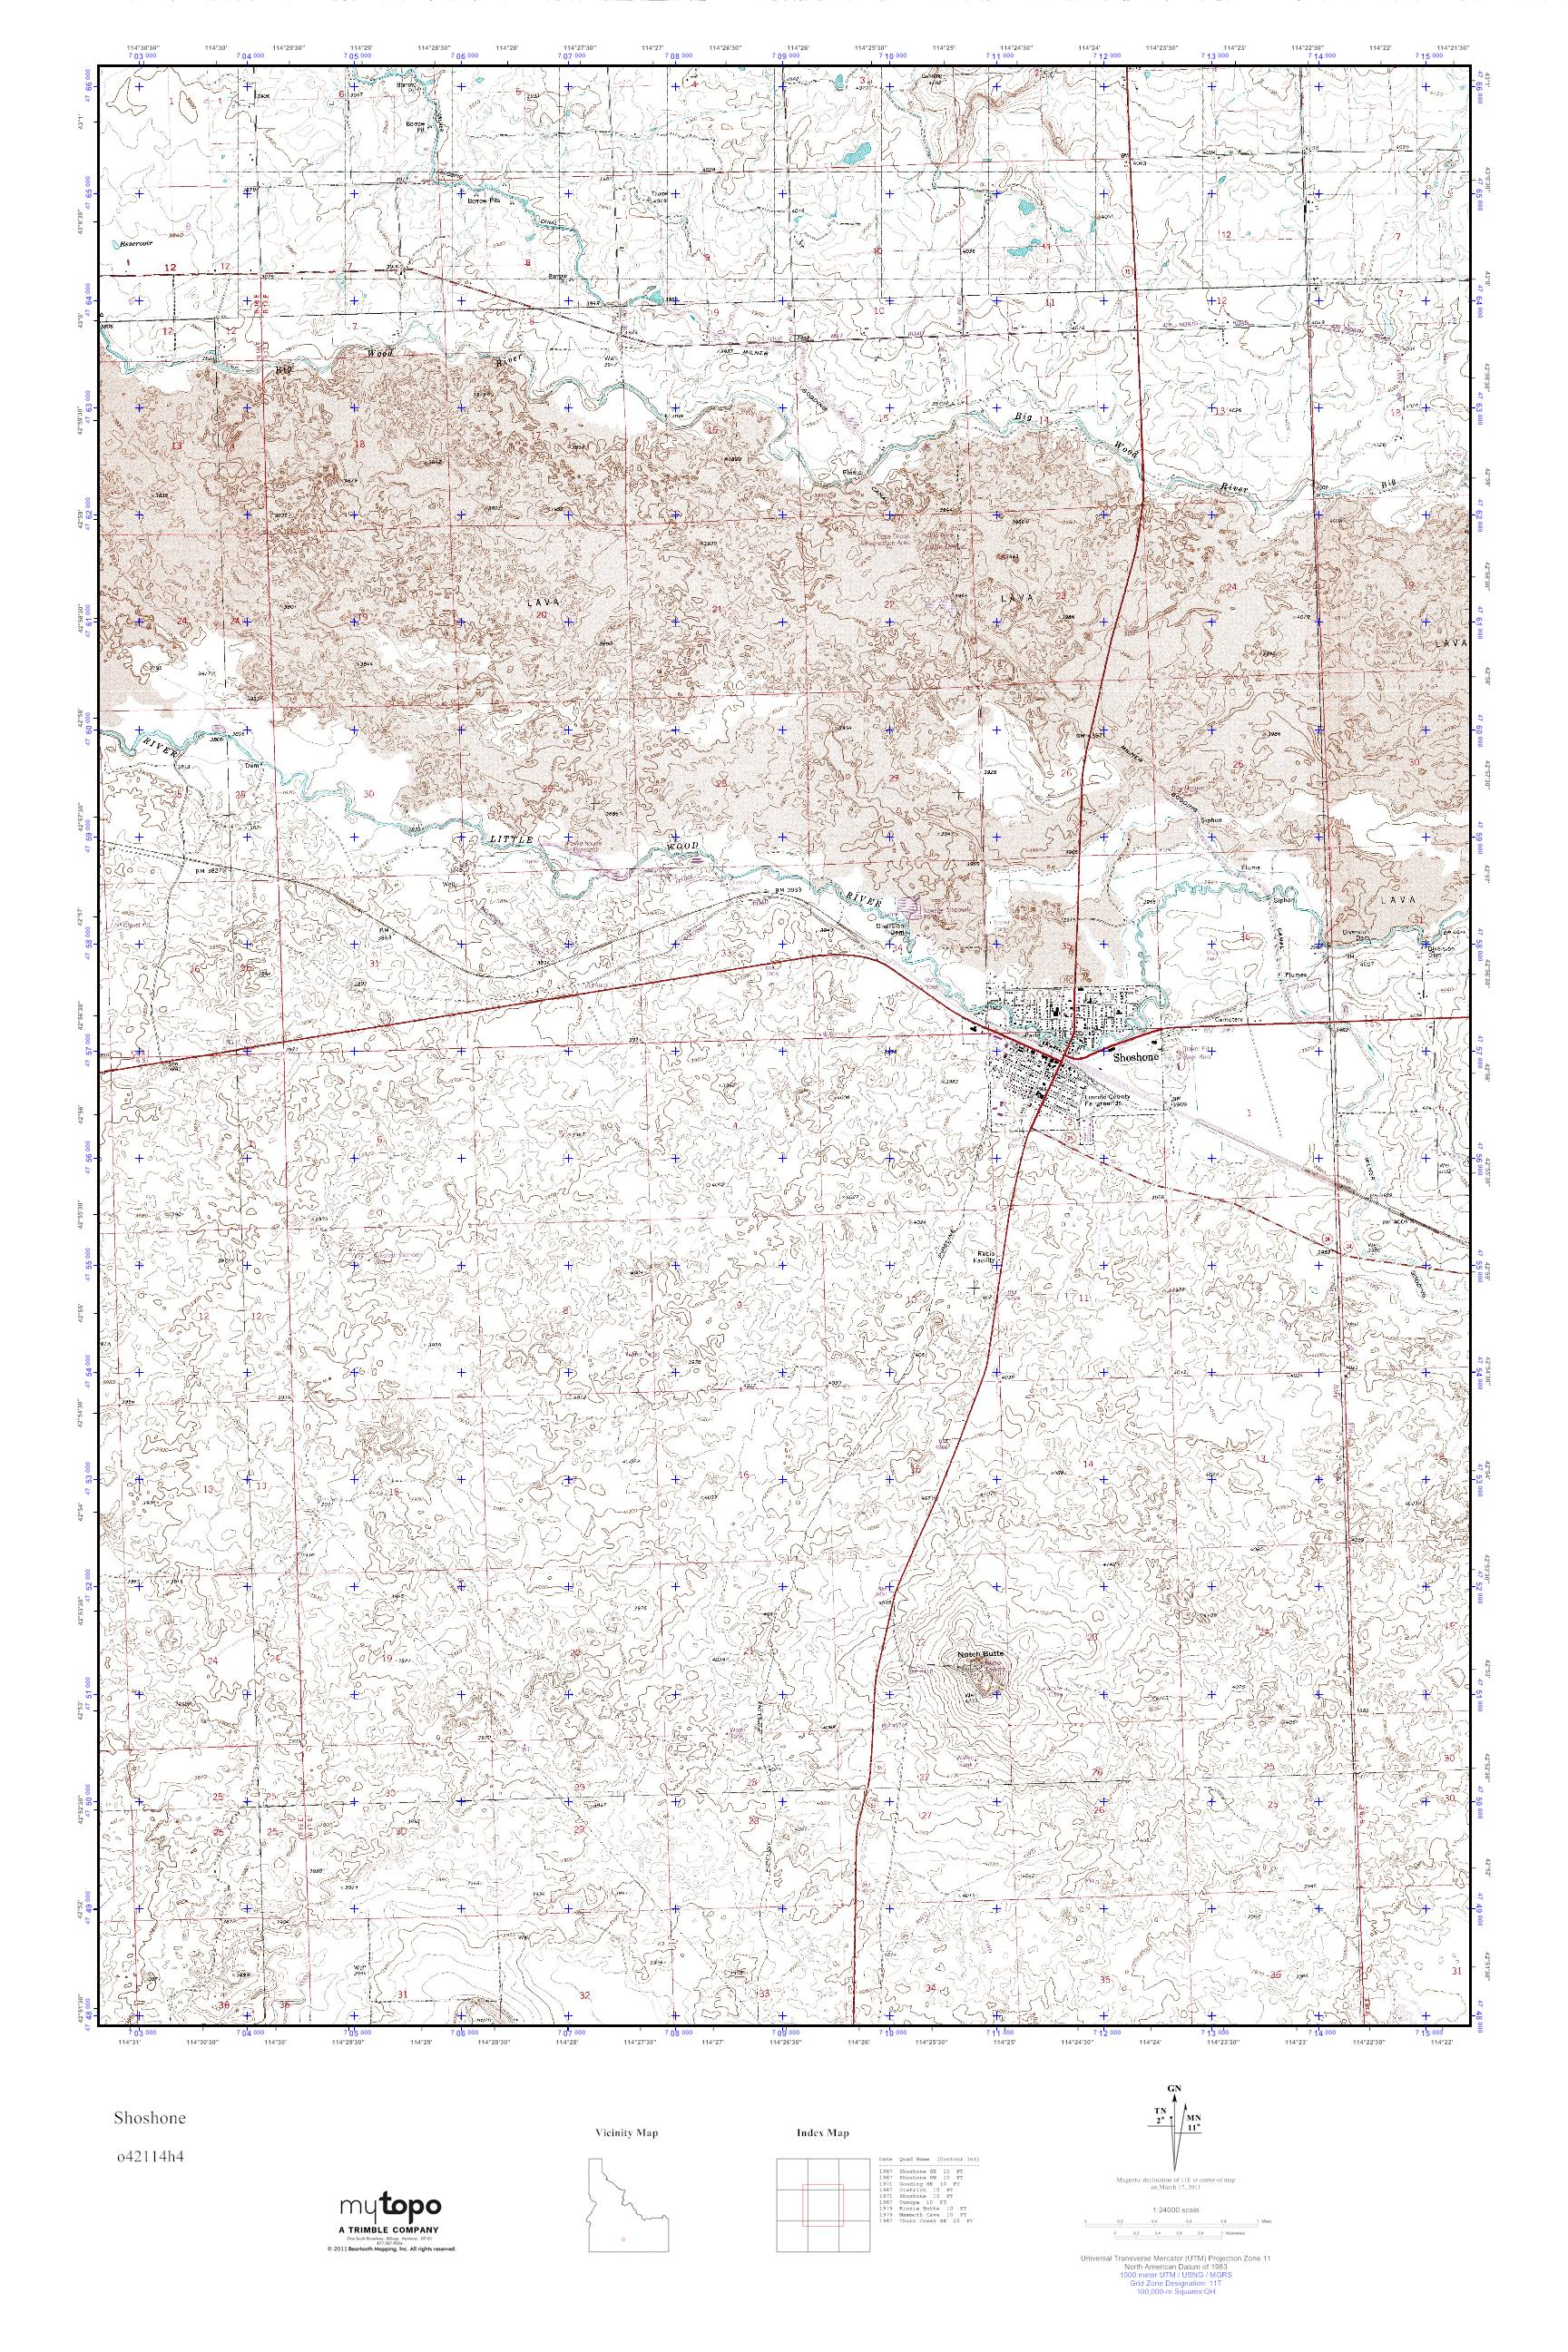 Shoshone Idaho Map.Mytopo Shoshone Idaho Usgs Quad Topo Map